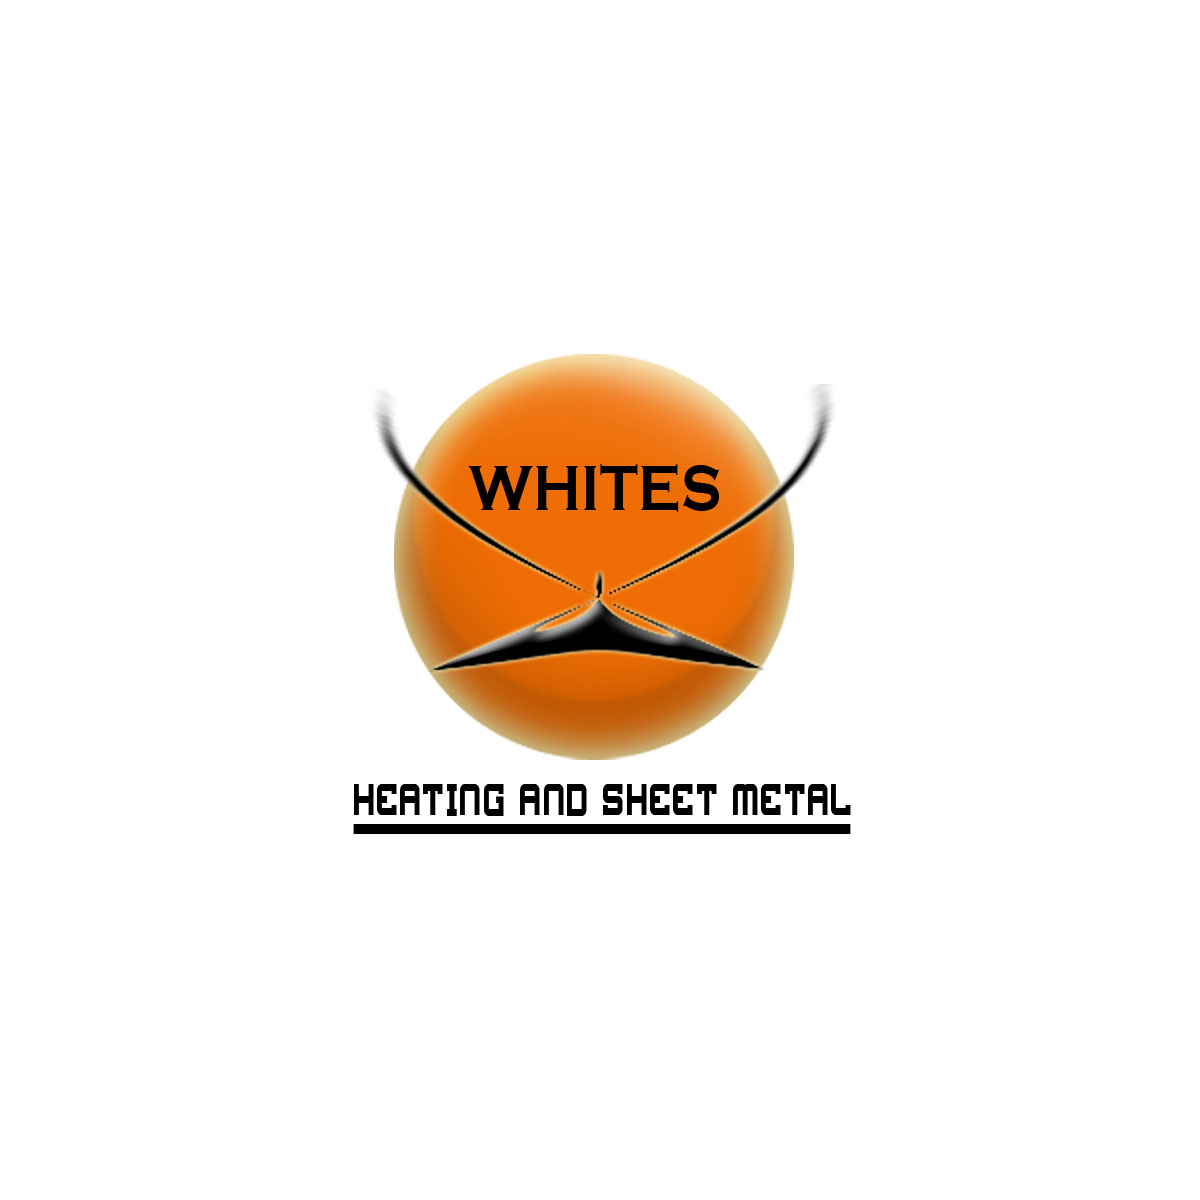 Logo Design by Moag - Entry No. 82 in the Logo Design Contest Imaginative Logo Design for White's Heating and Sheet Metal.